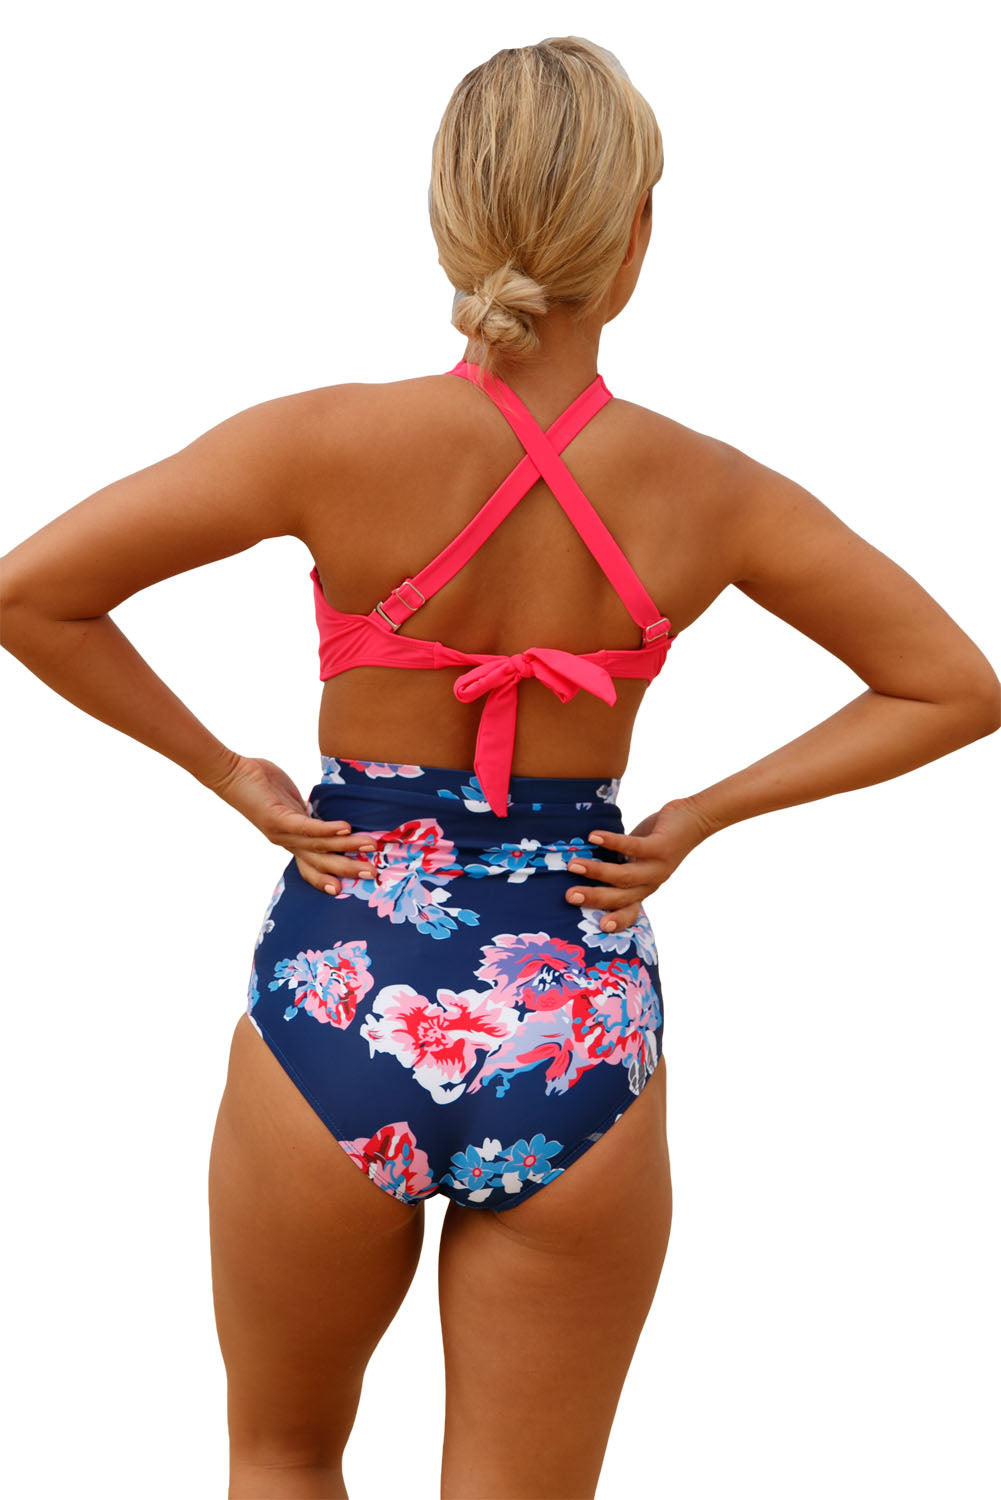 Her Fashion Orange Cross Front Bikini Vintage Floral High Waist Swimsuit